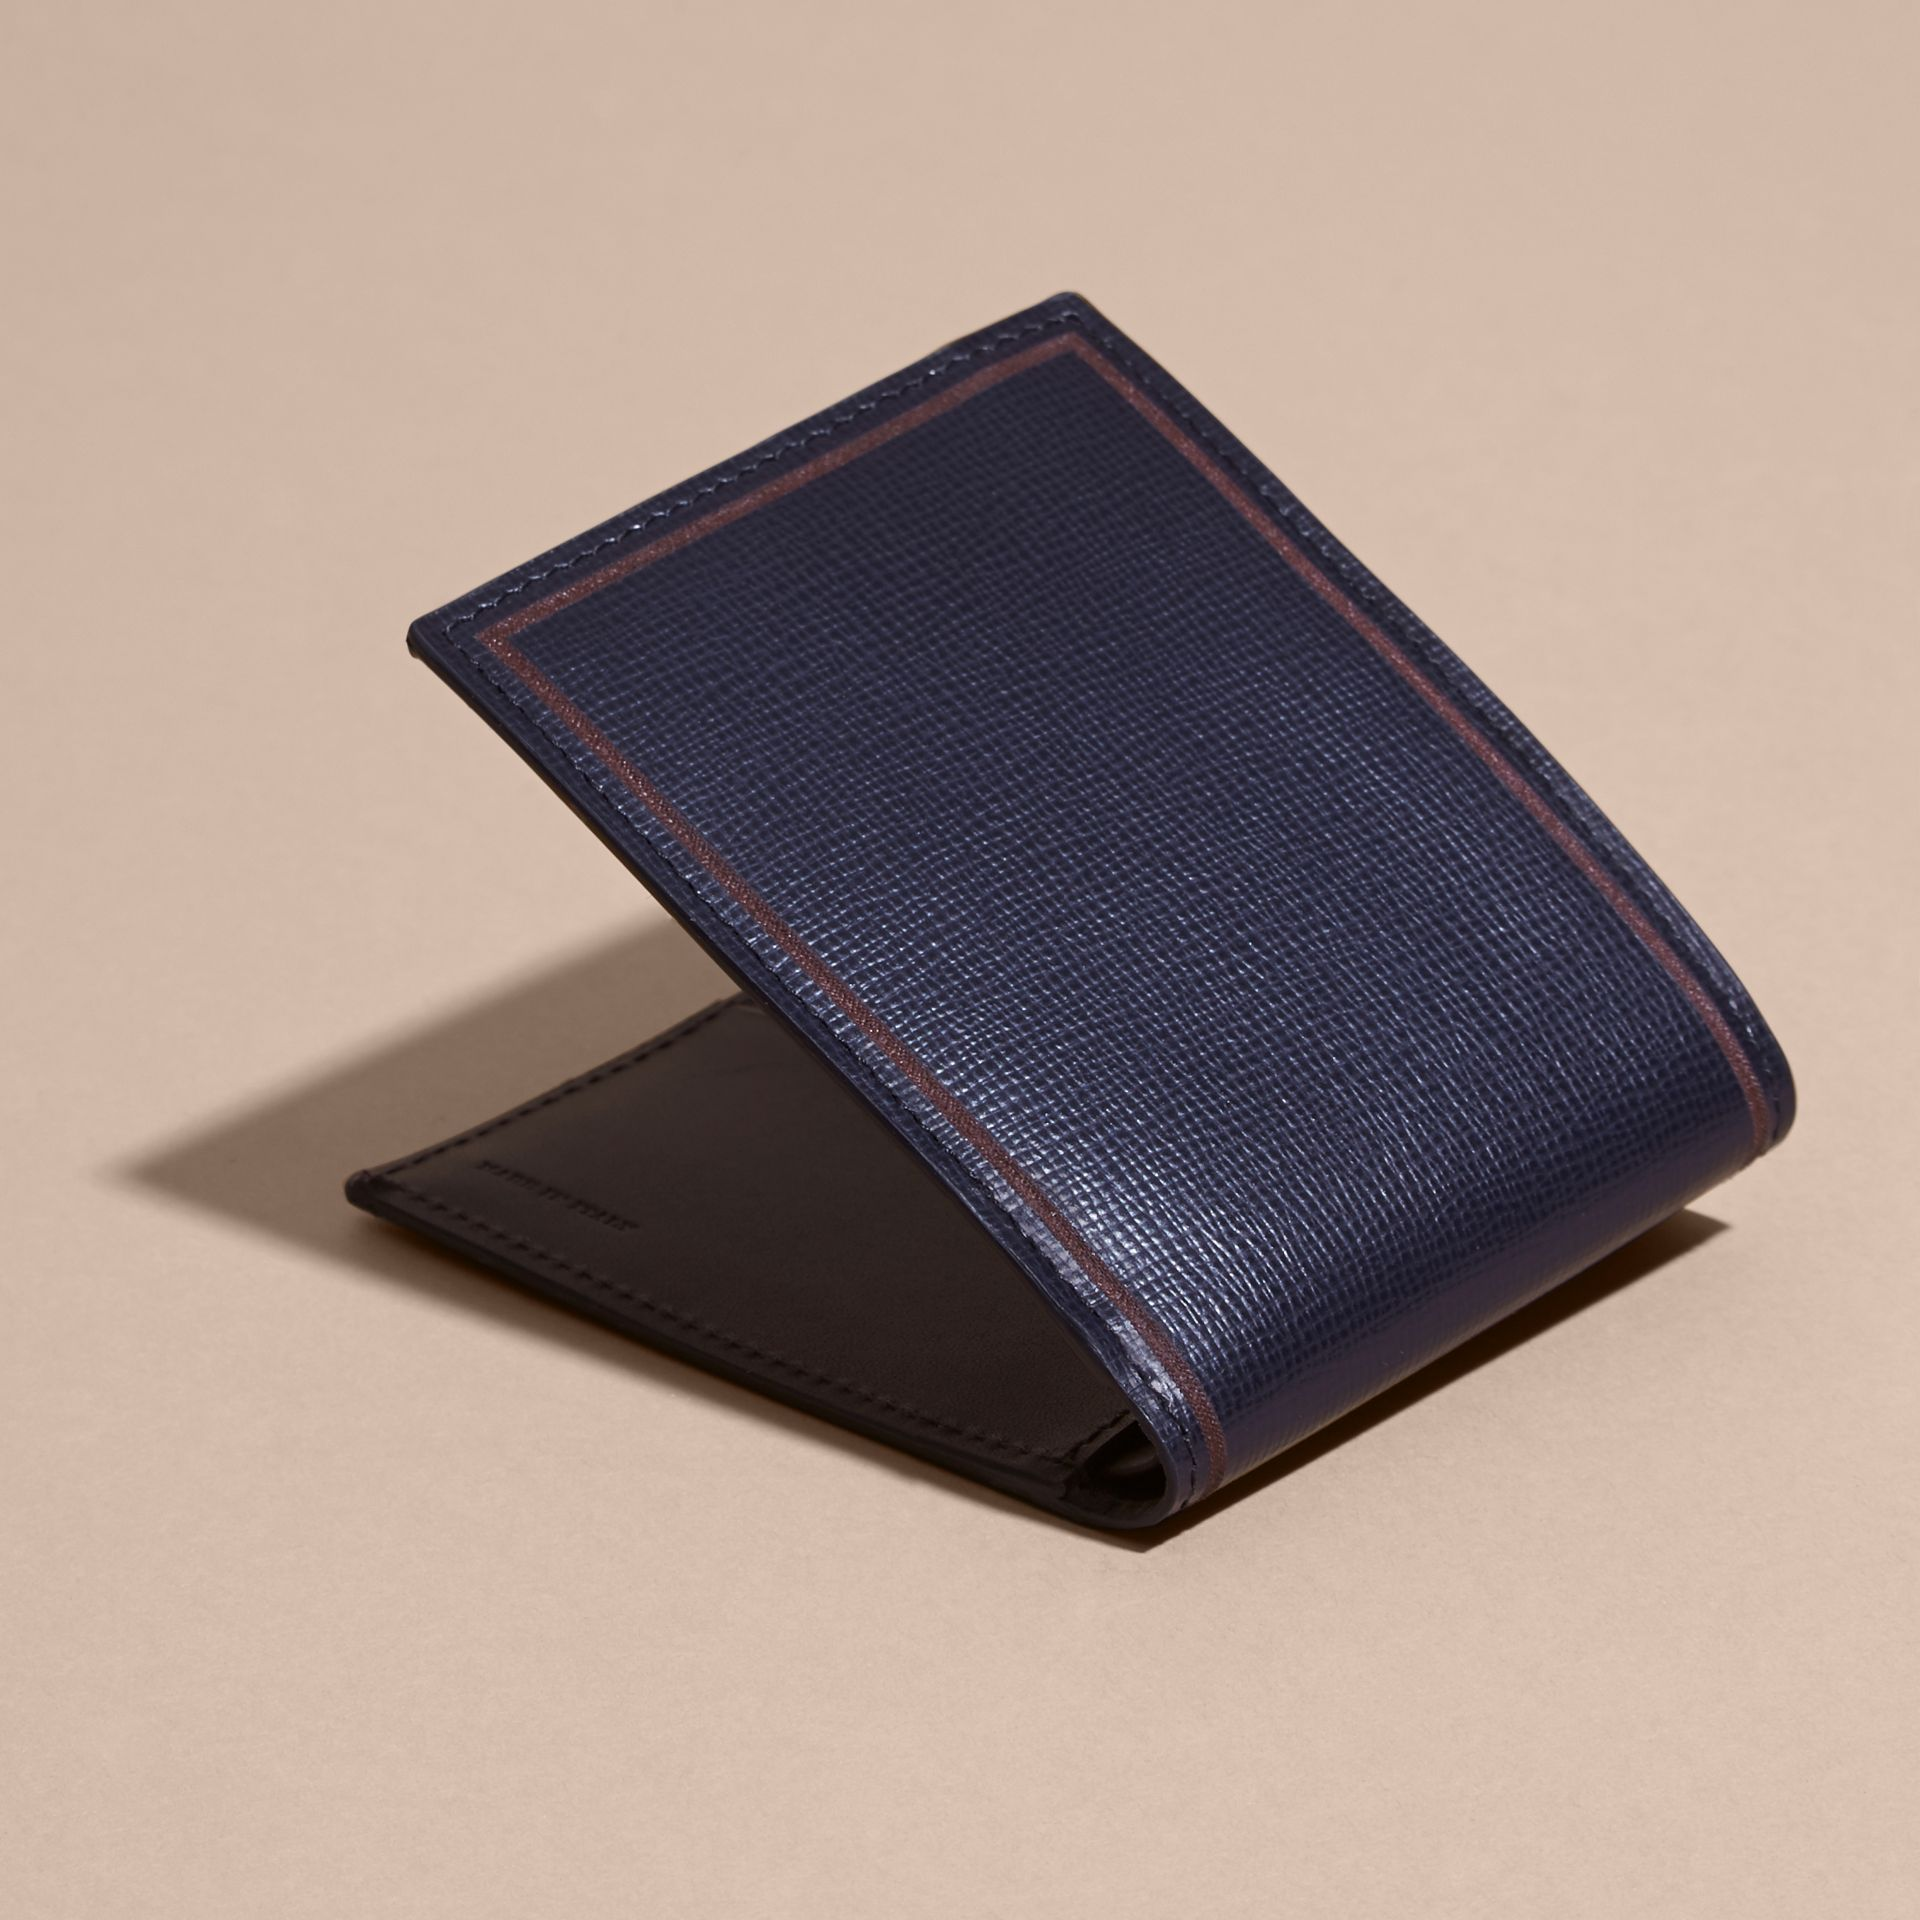 Border Detail London Leather Folding Wallet Dark Navy - gallery image 4